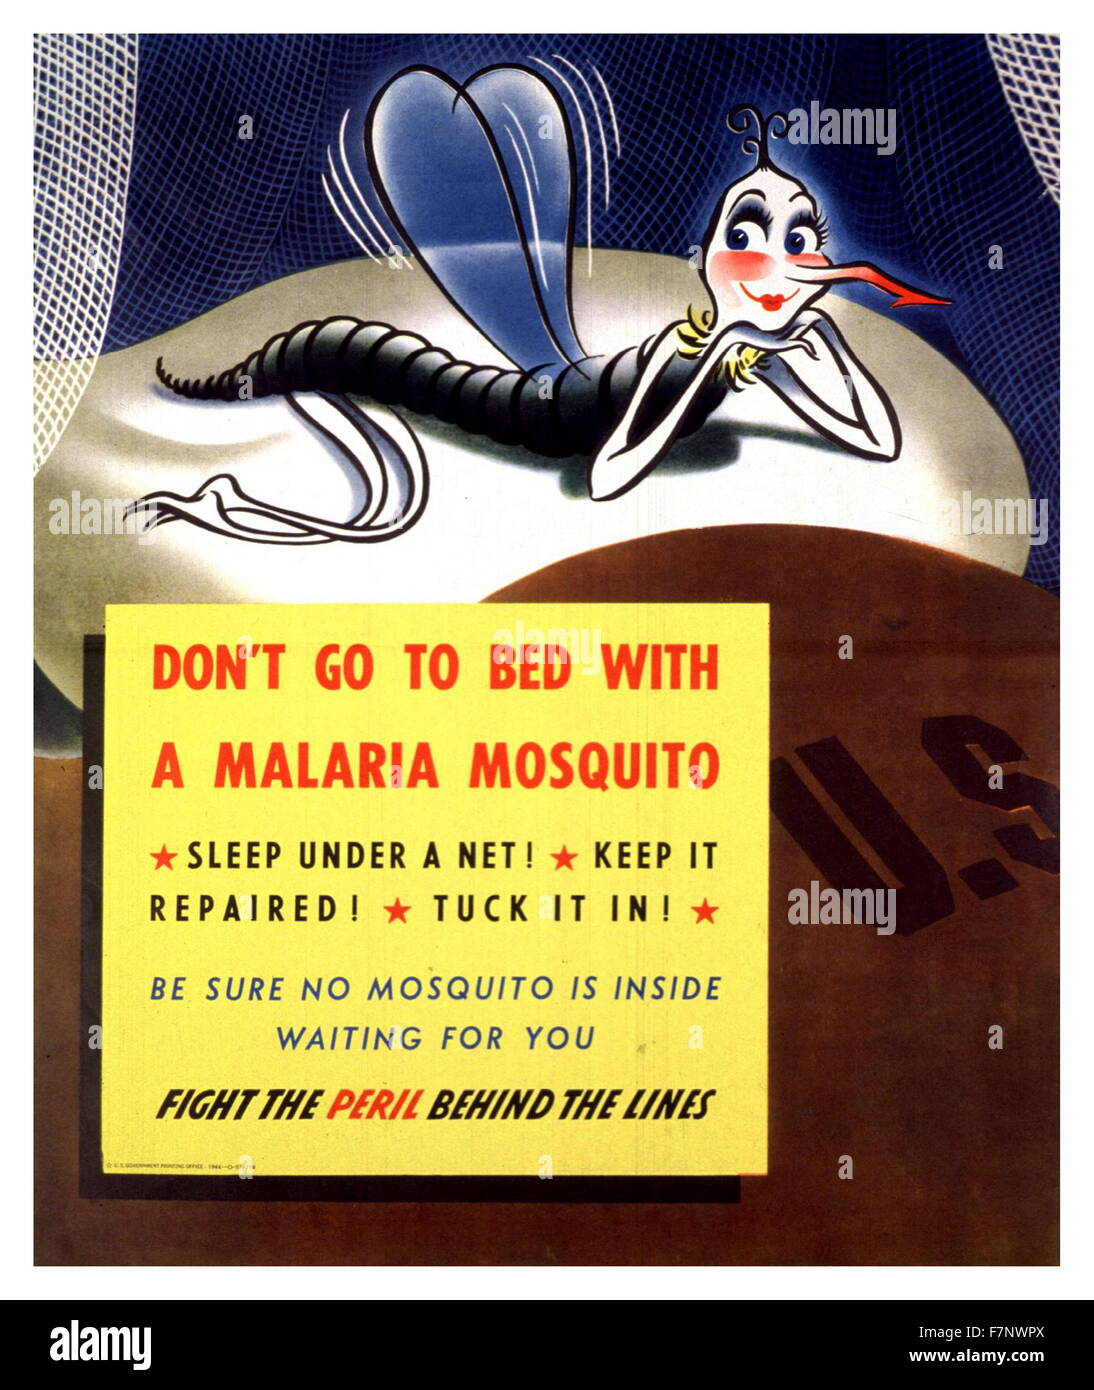 World War Two US propaganda poster 'Don't go to Bed with a Malaria Mosquito' 1943 - Stock Image